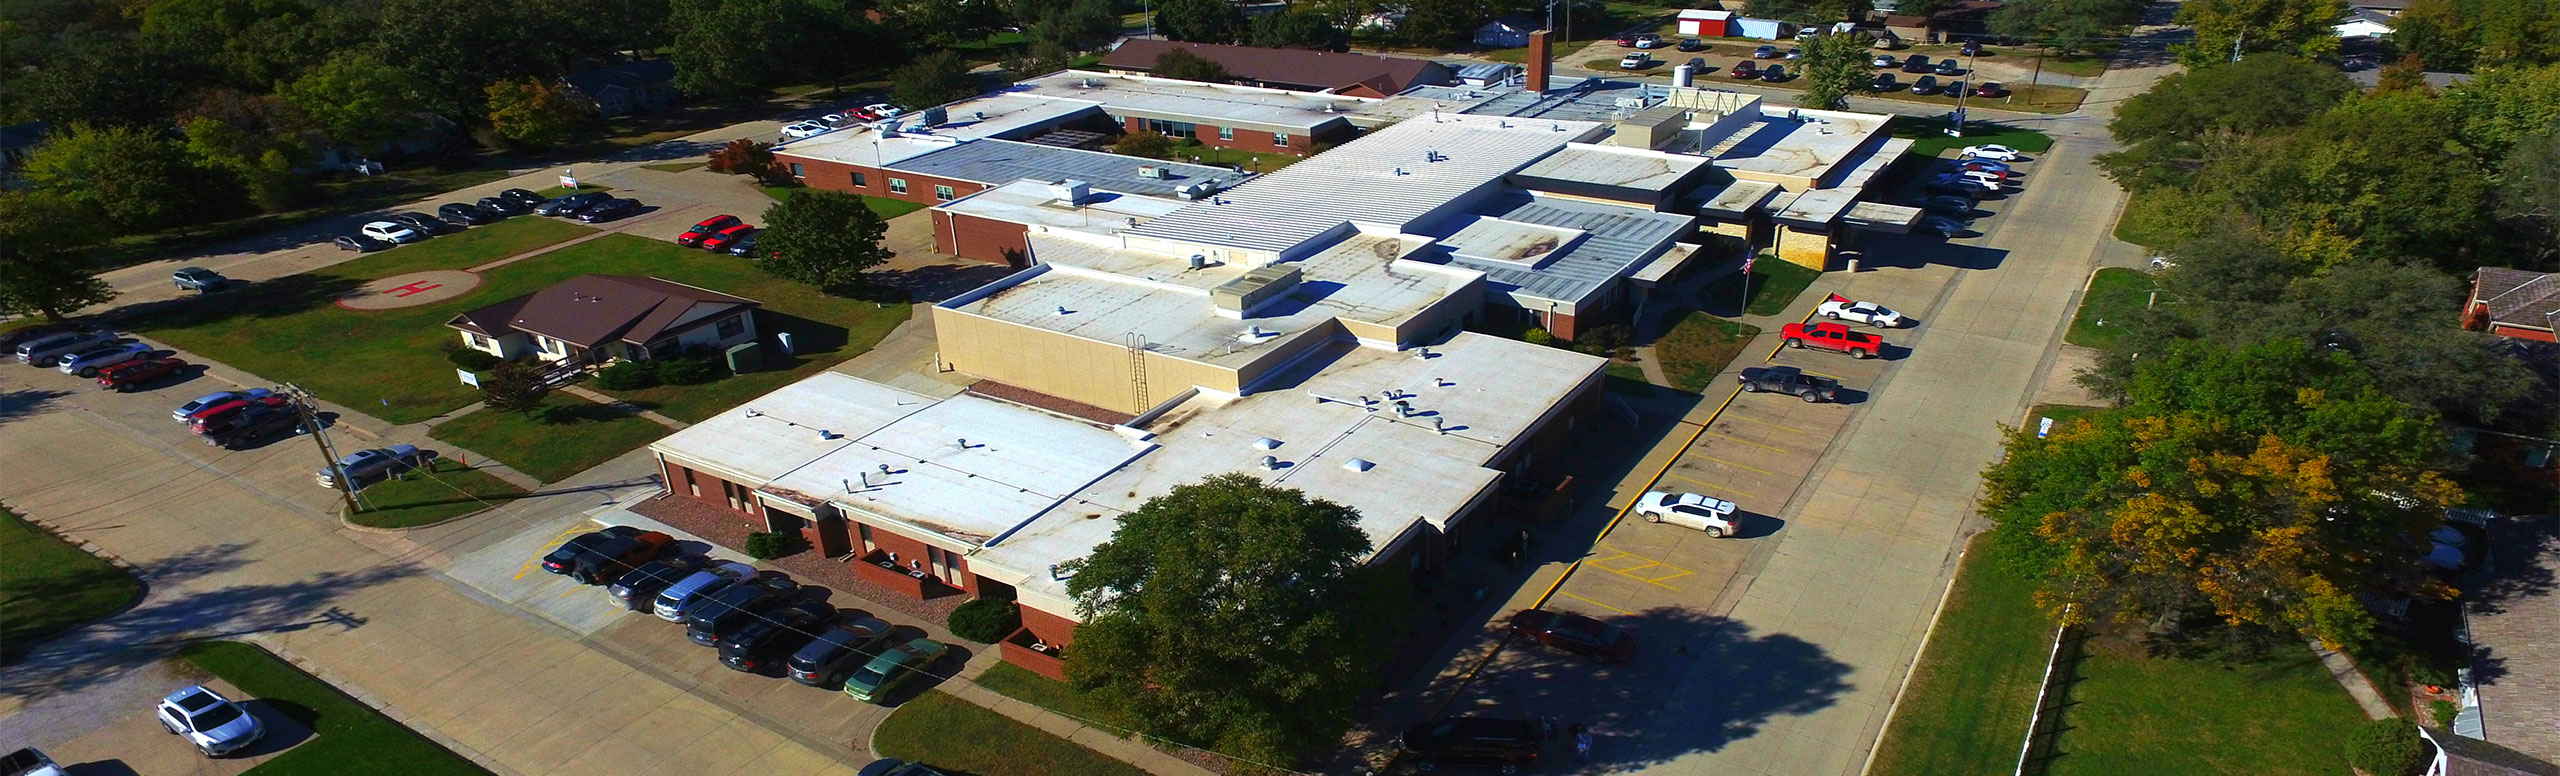 Picture of Saint Luke Hospital and Living Center from a sky view shot